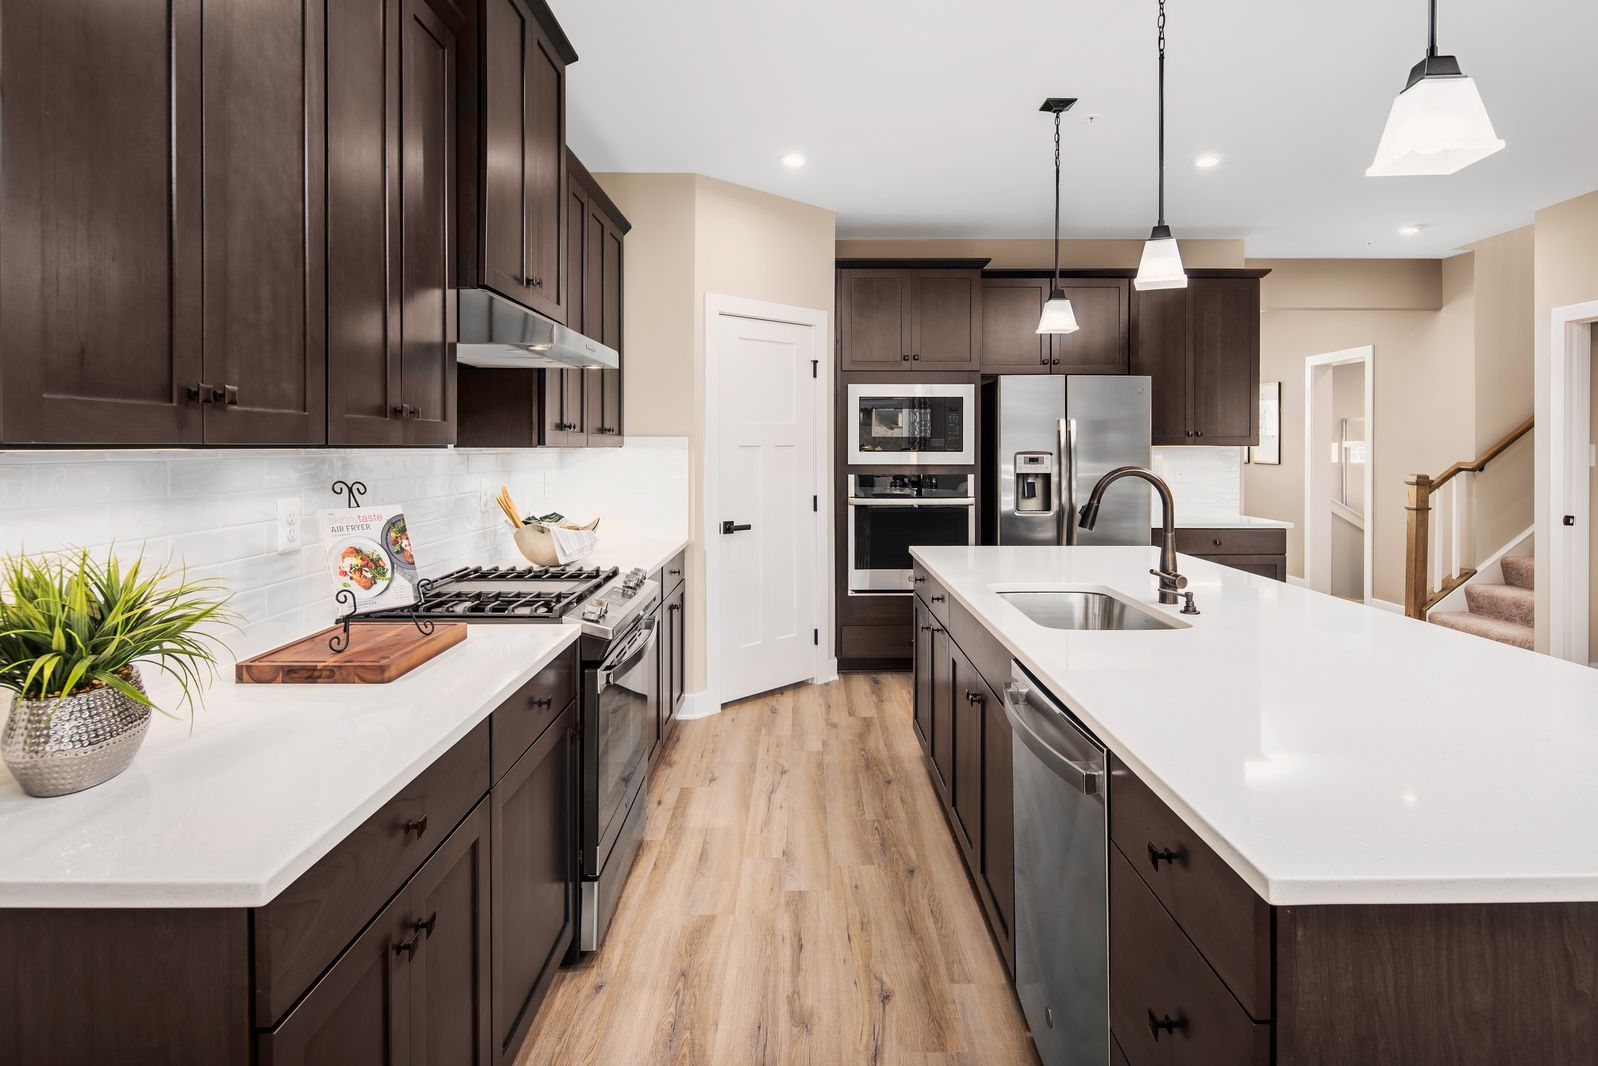 Kitchen featured in the Lehigh By Ryan Homes in Washington, VA